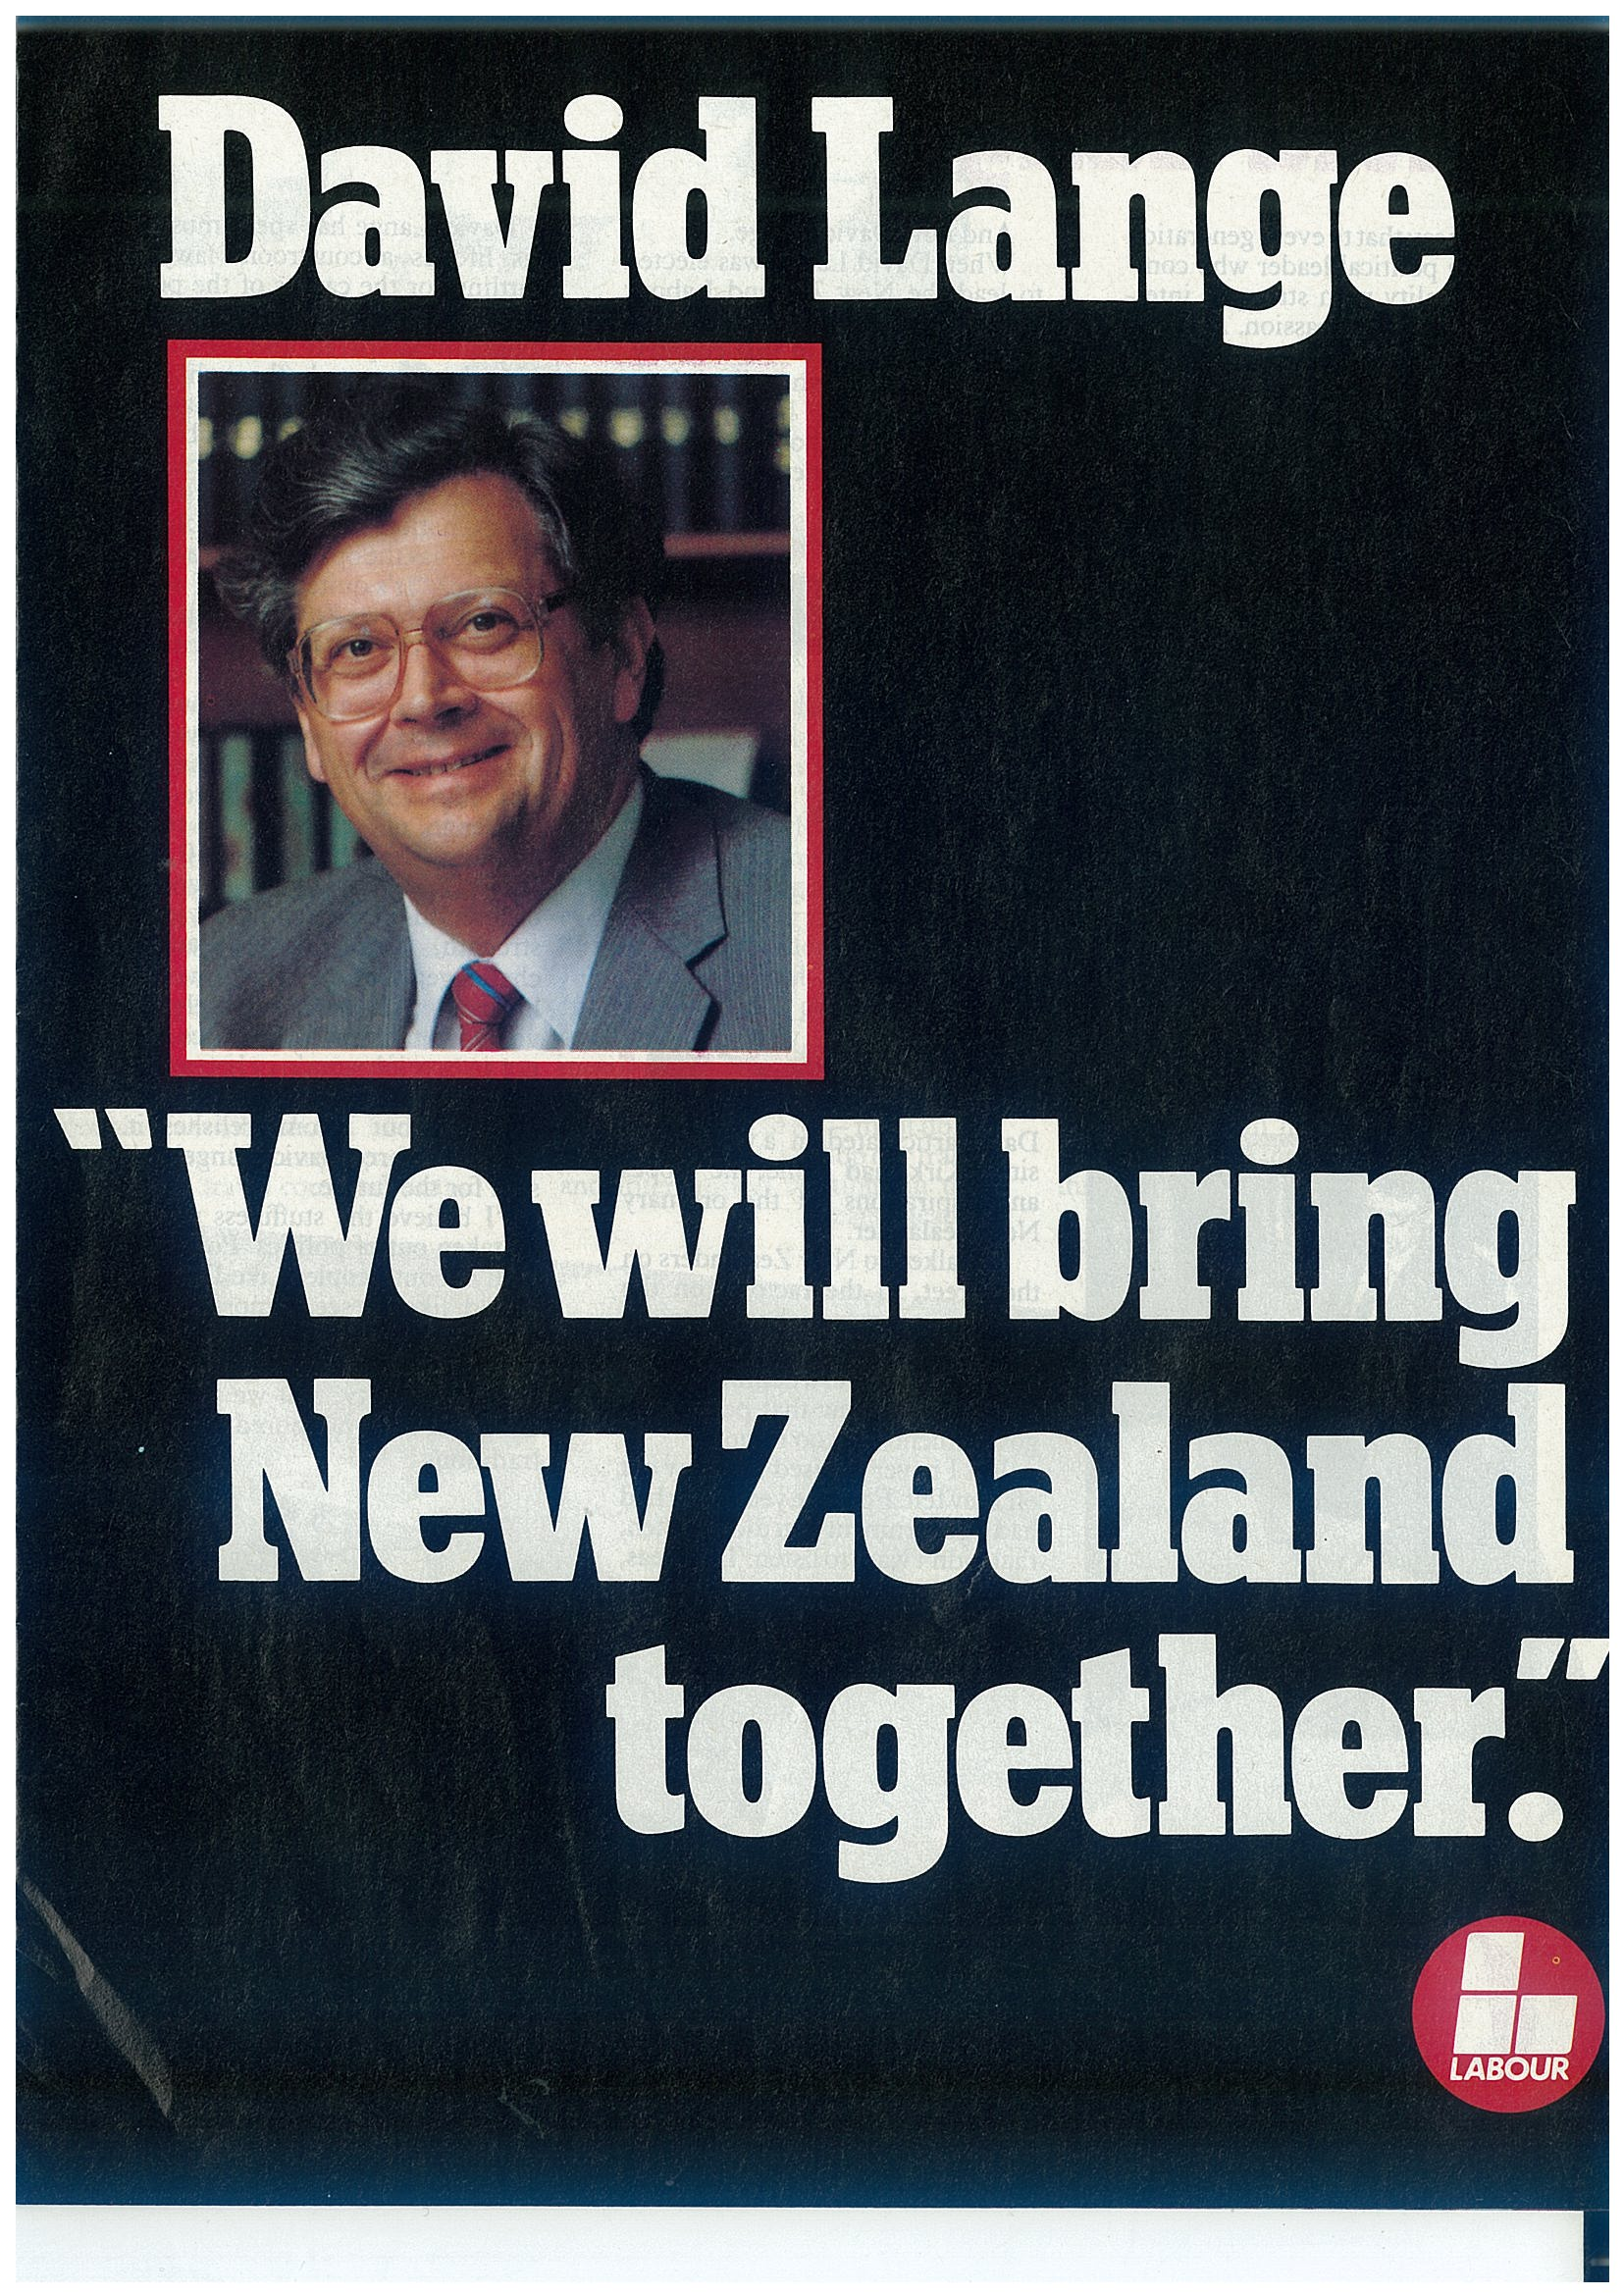 Election ephemera The Hocken Blog University of Otago New Zealand – Election Brochure